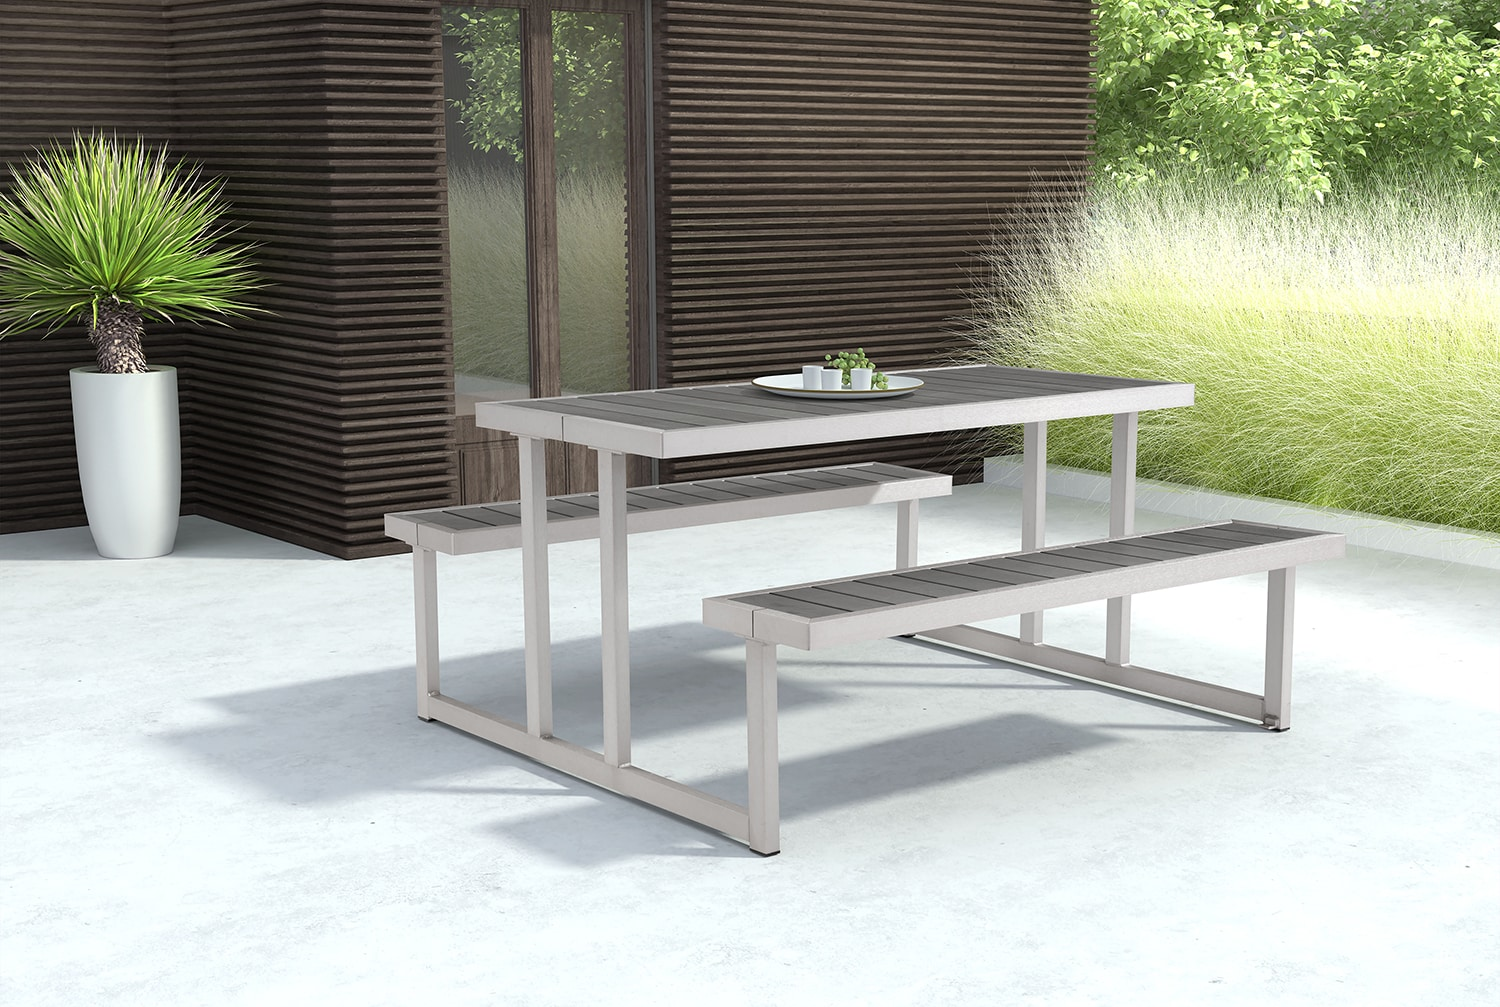 Outdoor Furniture - Westlake Outdoor Picnic Table - Gray